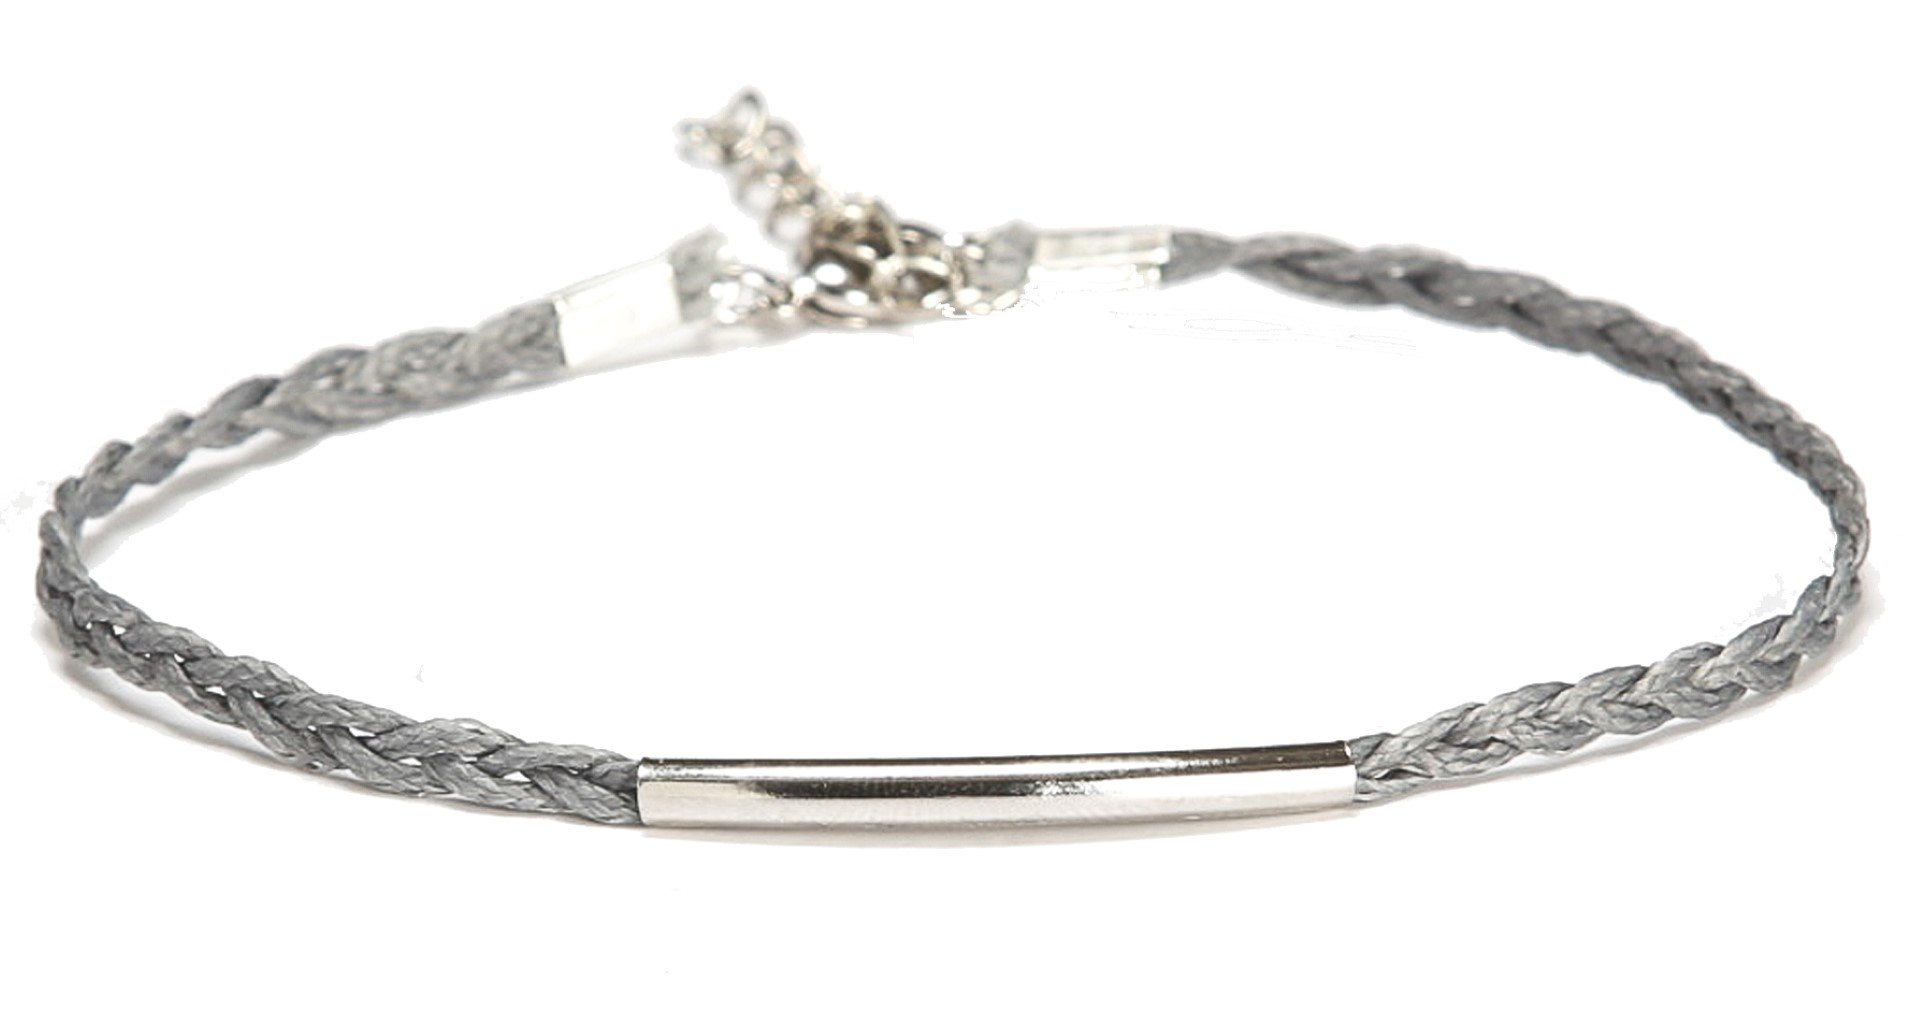 Silver bar anklet, braided cord ankle bracelet with a silver tube, gray braid. braided anklet, minimalist jewelry, gift for her, summer